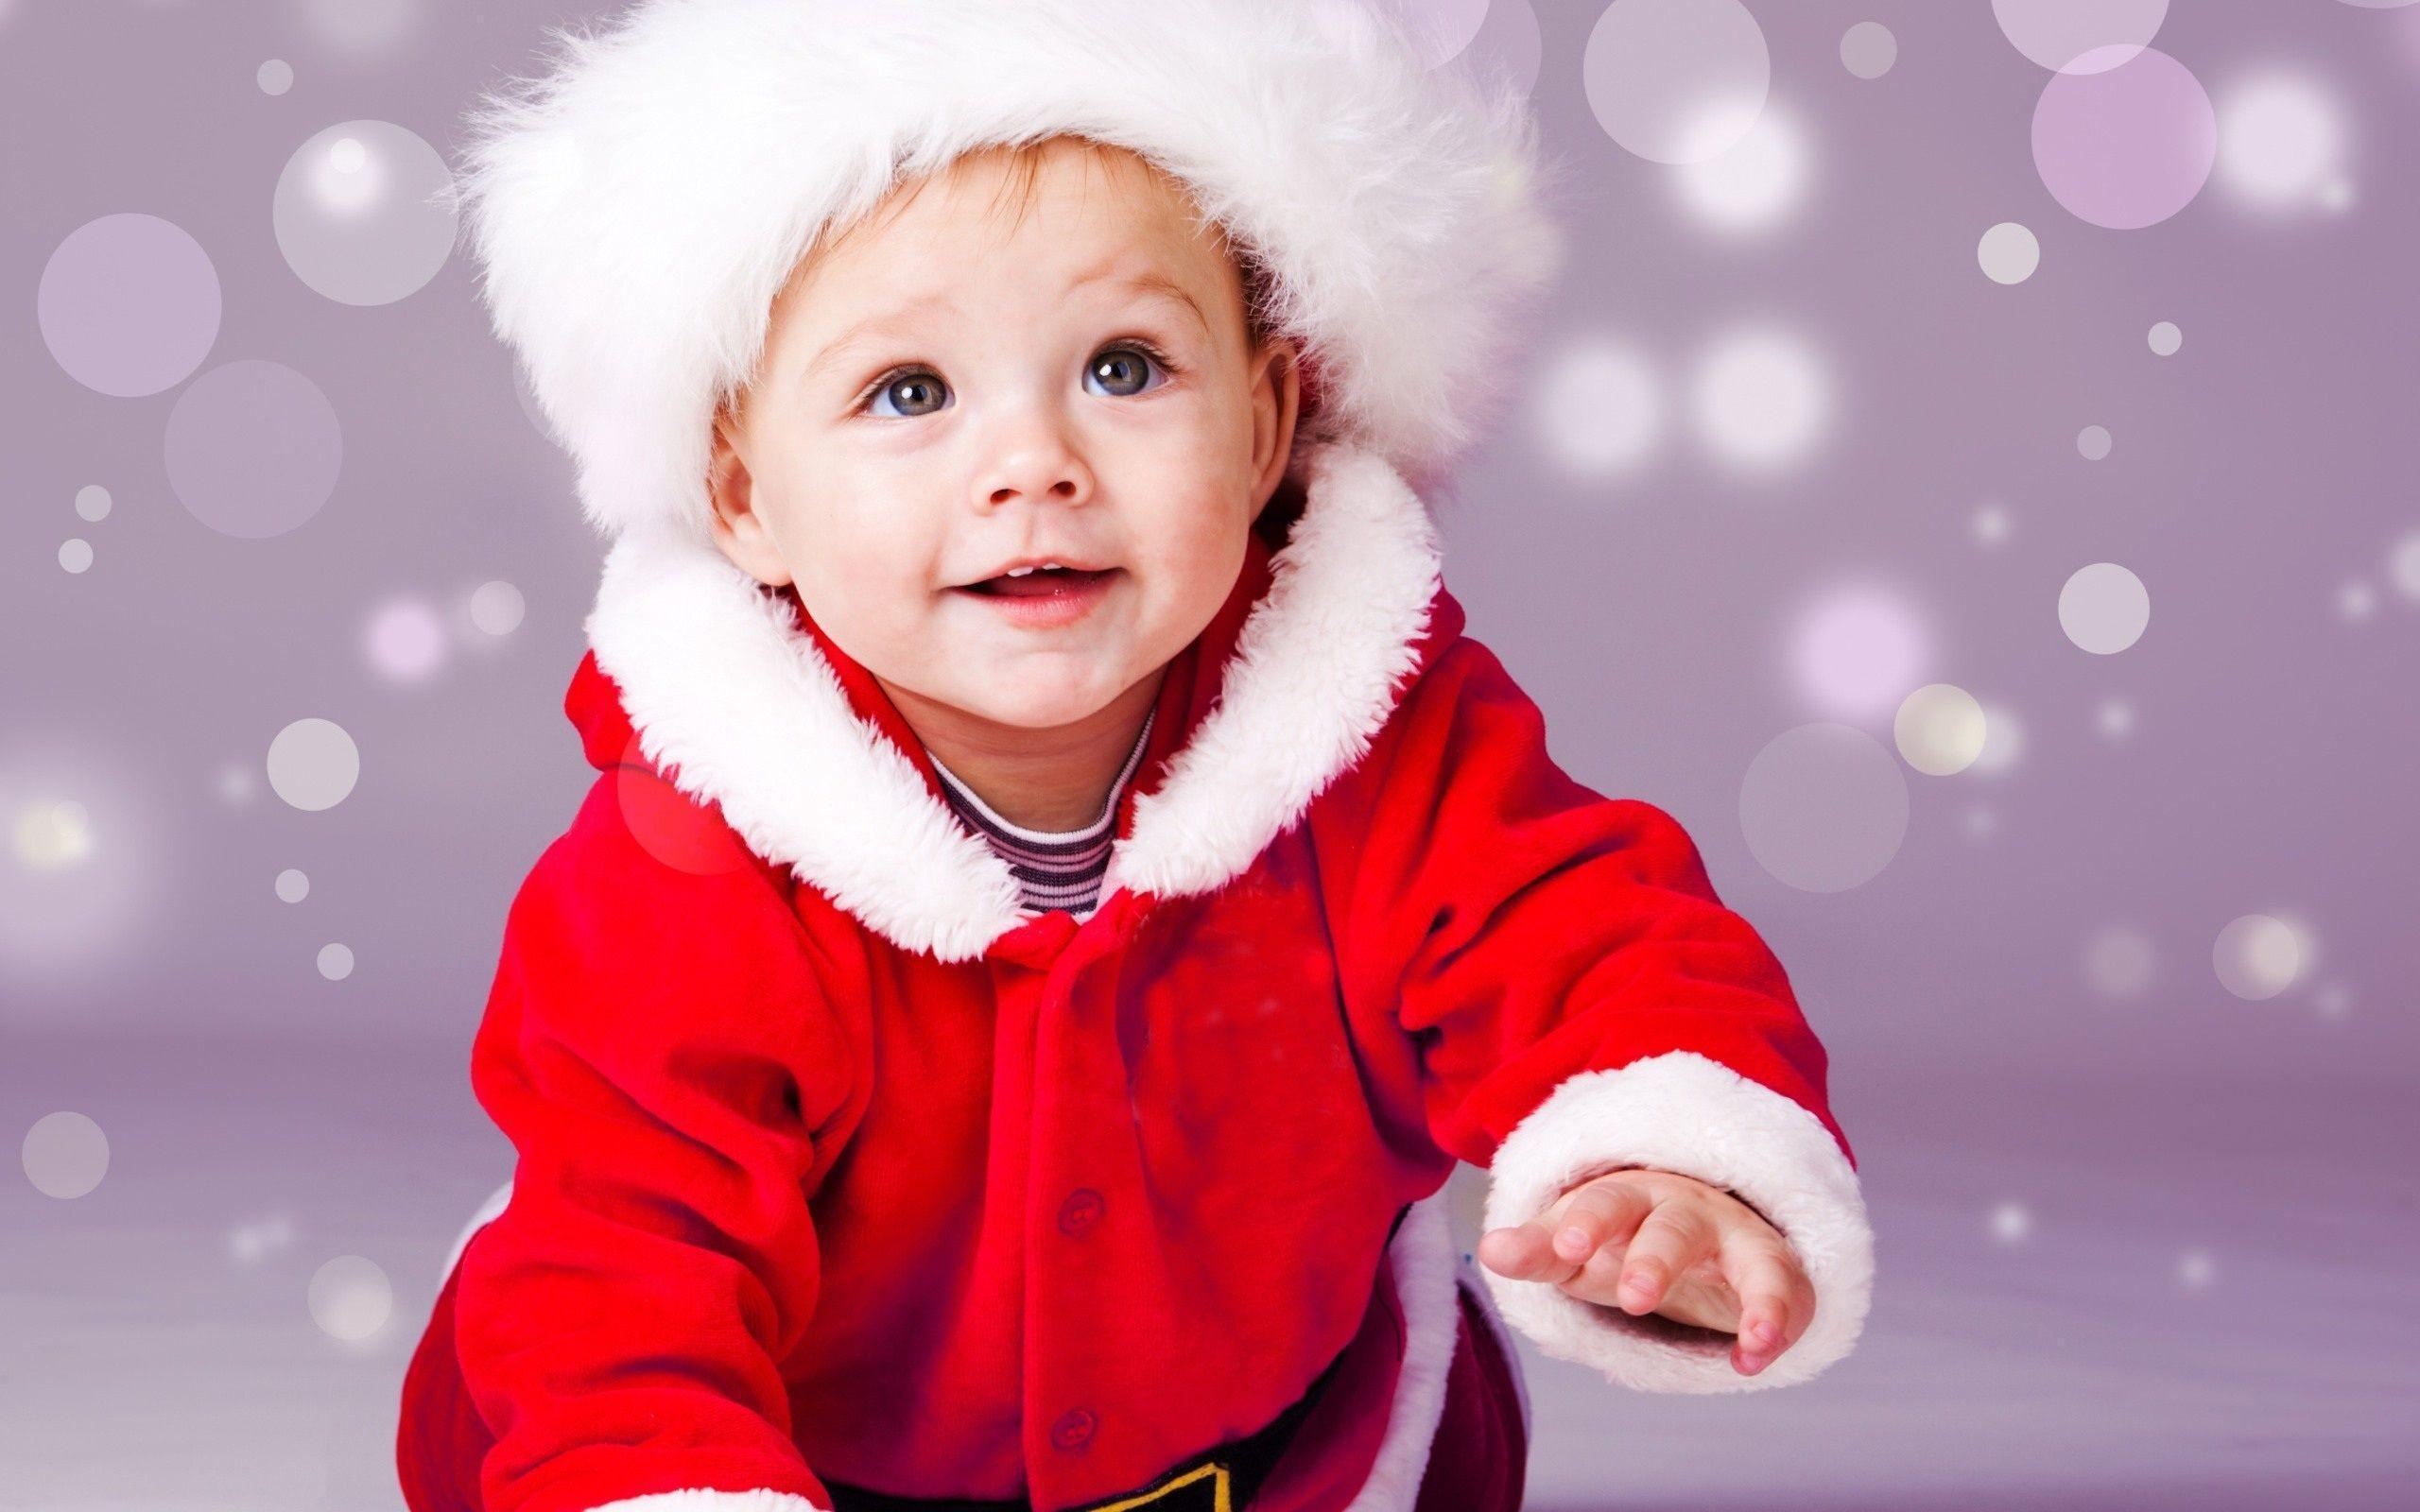 Free Baby Wallpapers HD Download | Free Desk Wallpapers